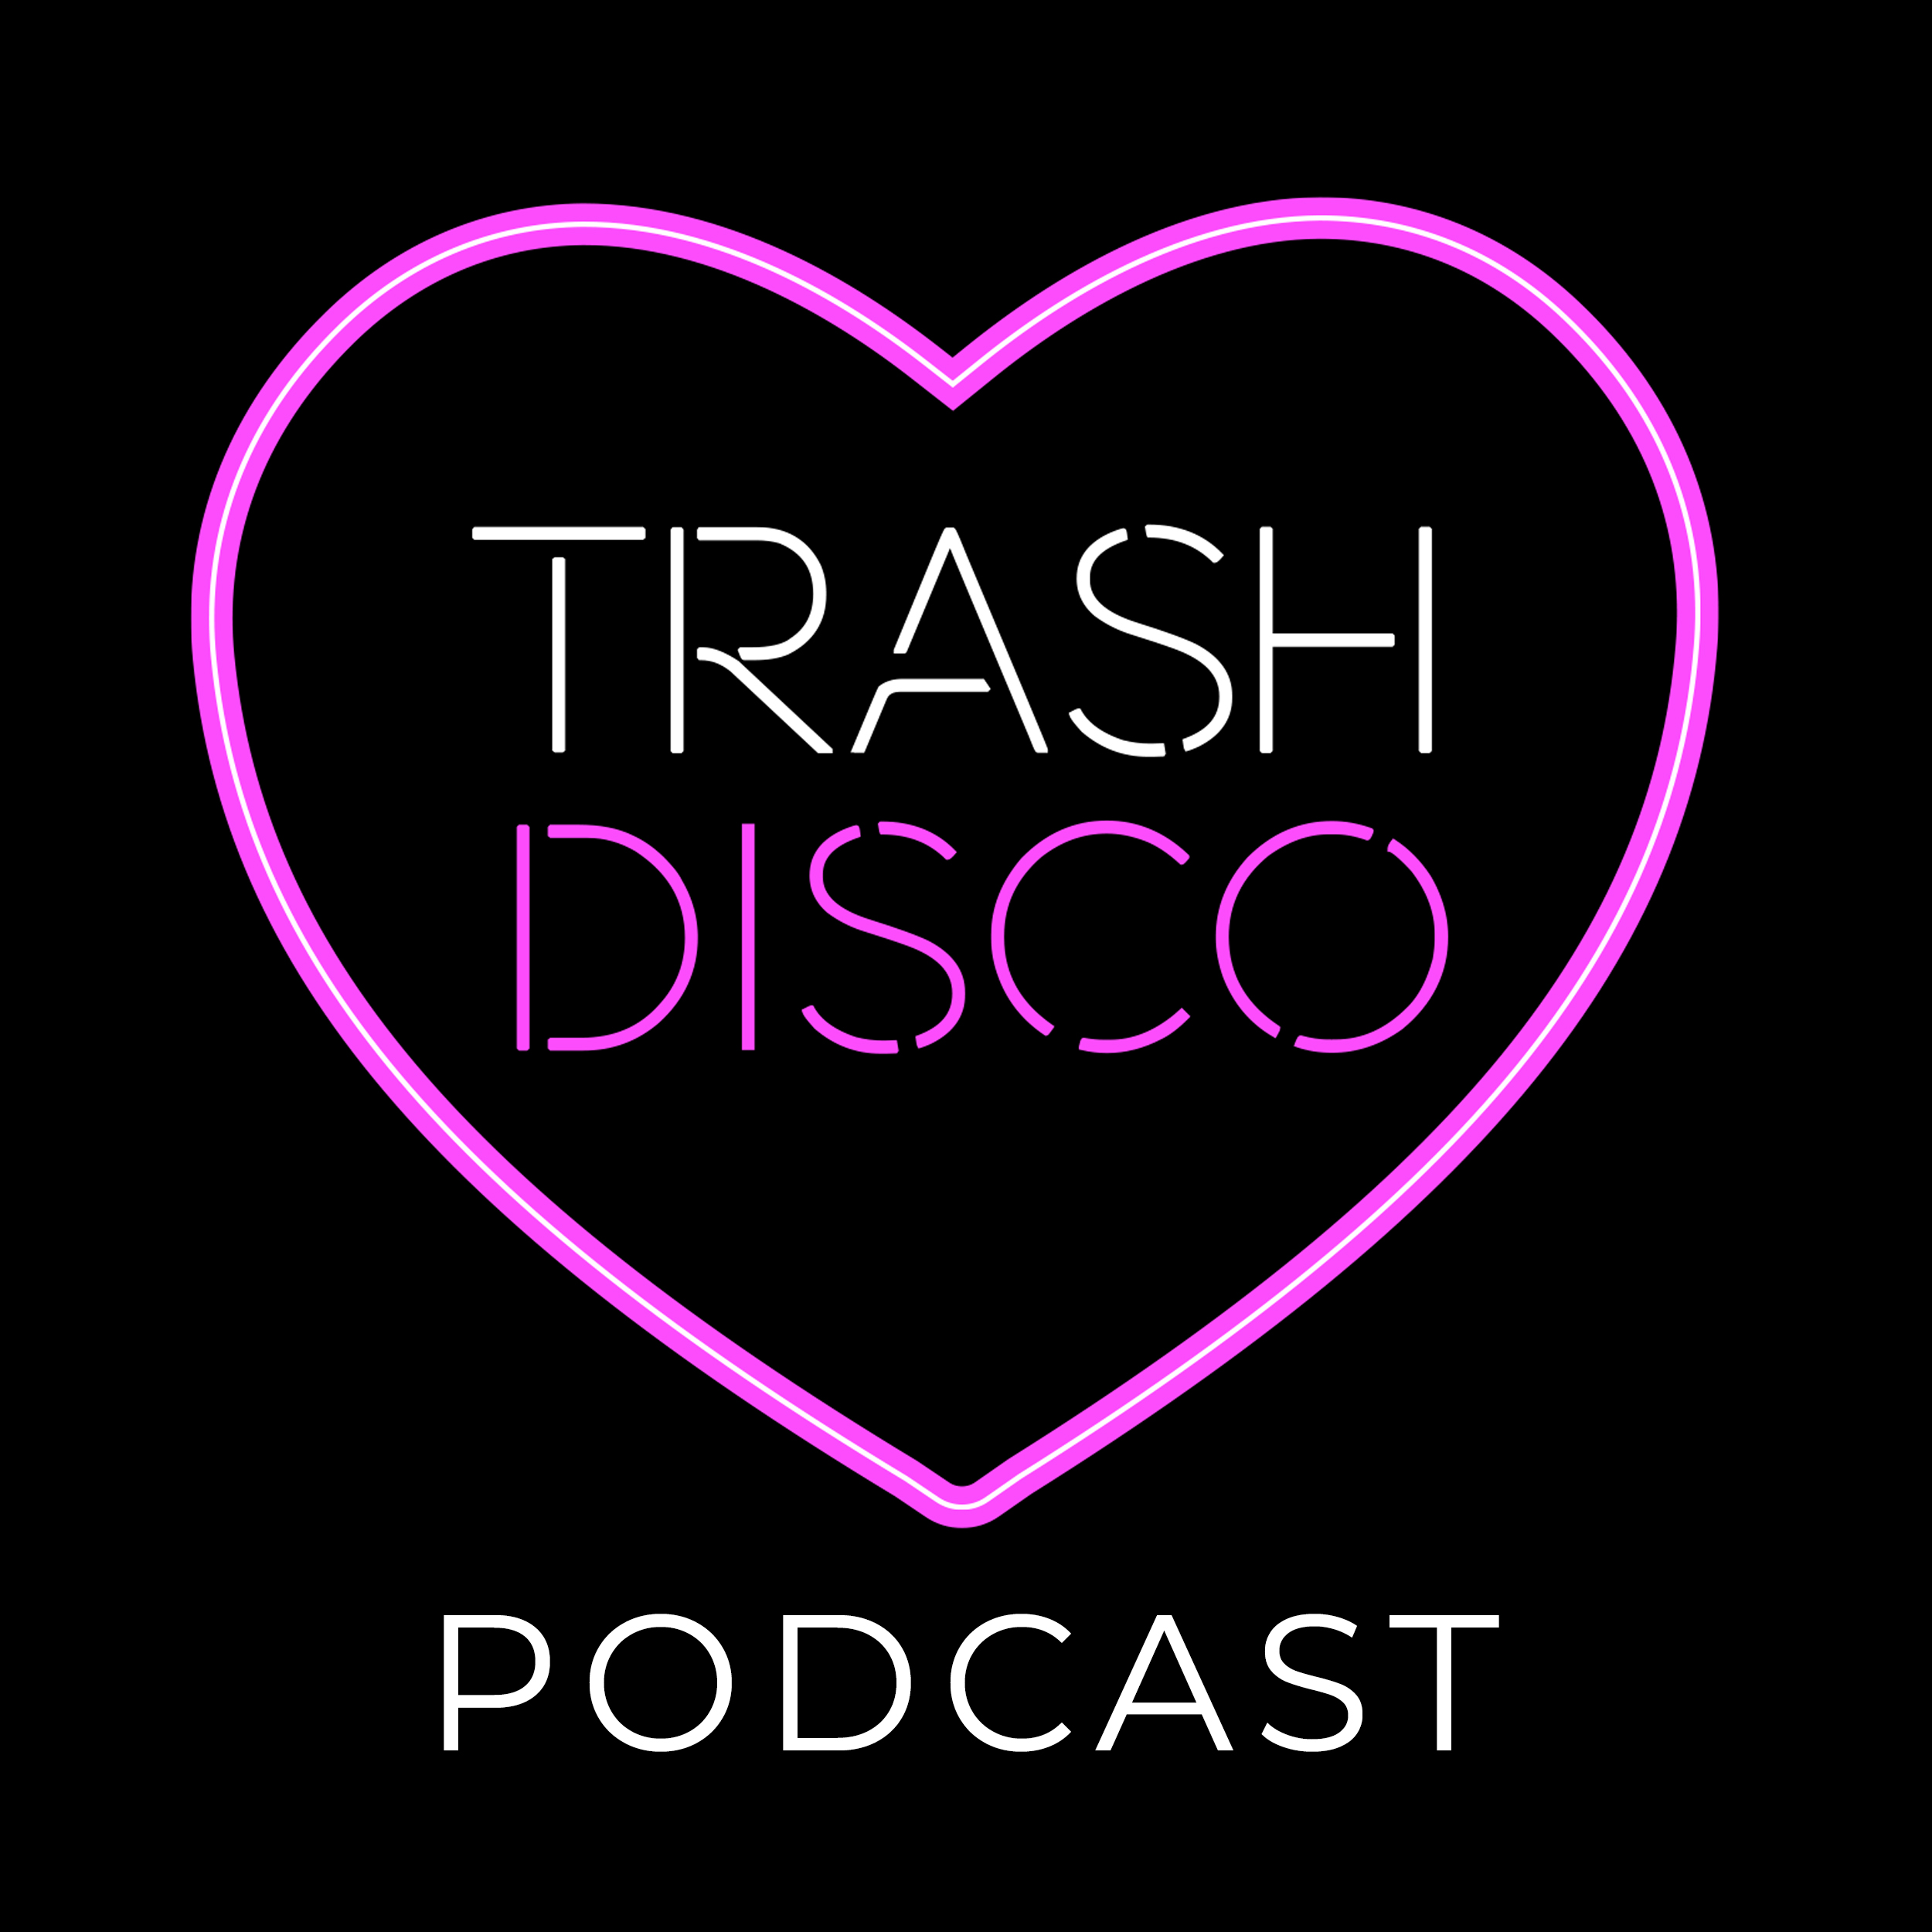 Trash Disco Podcast